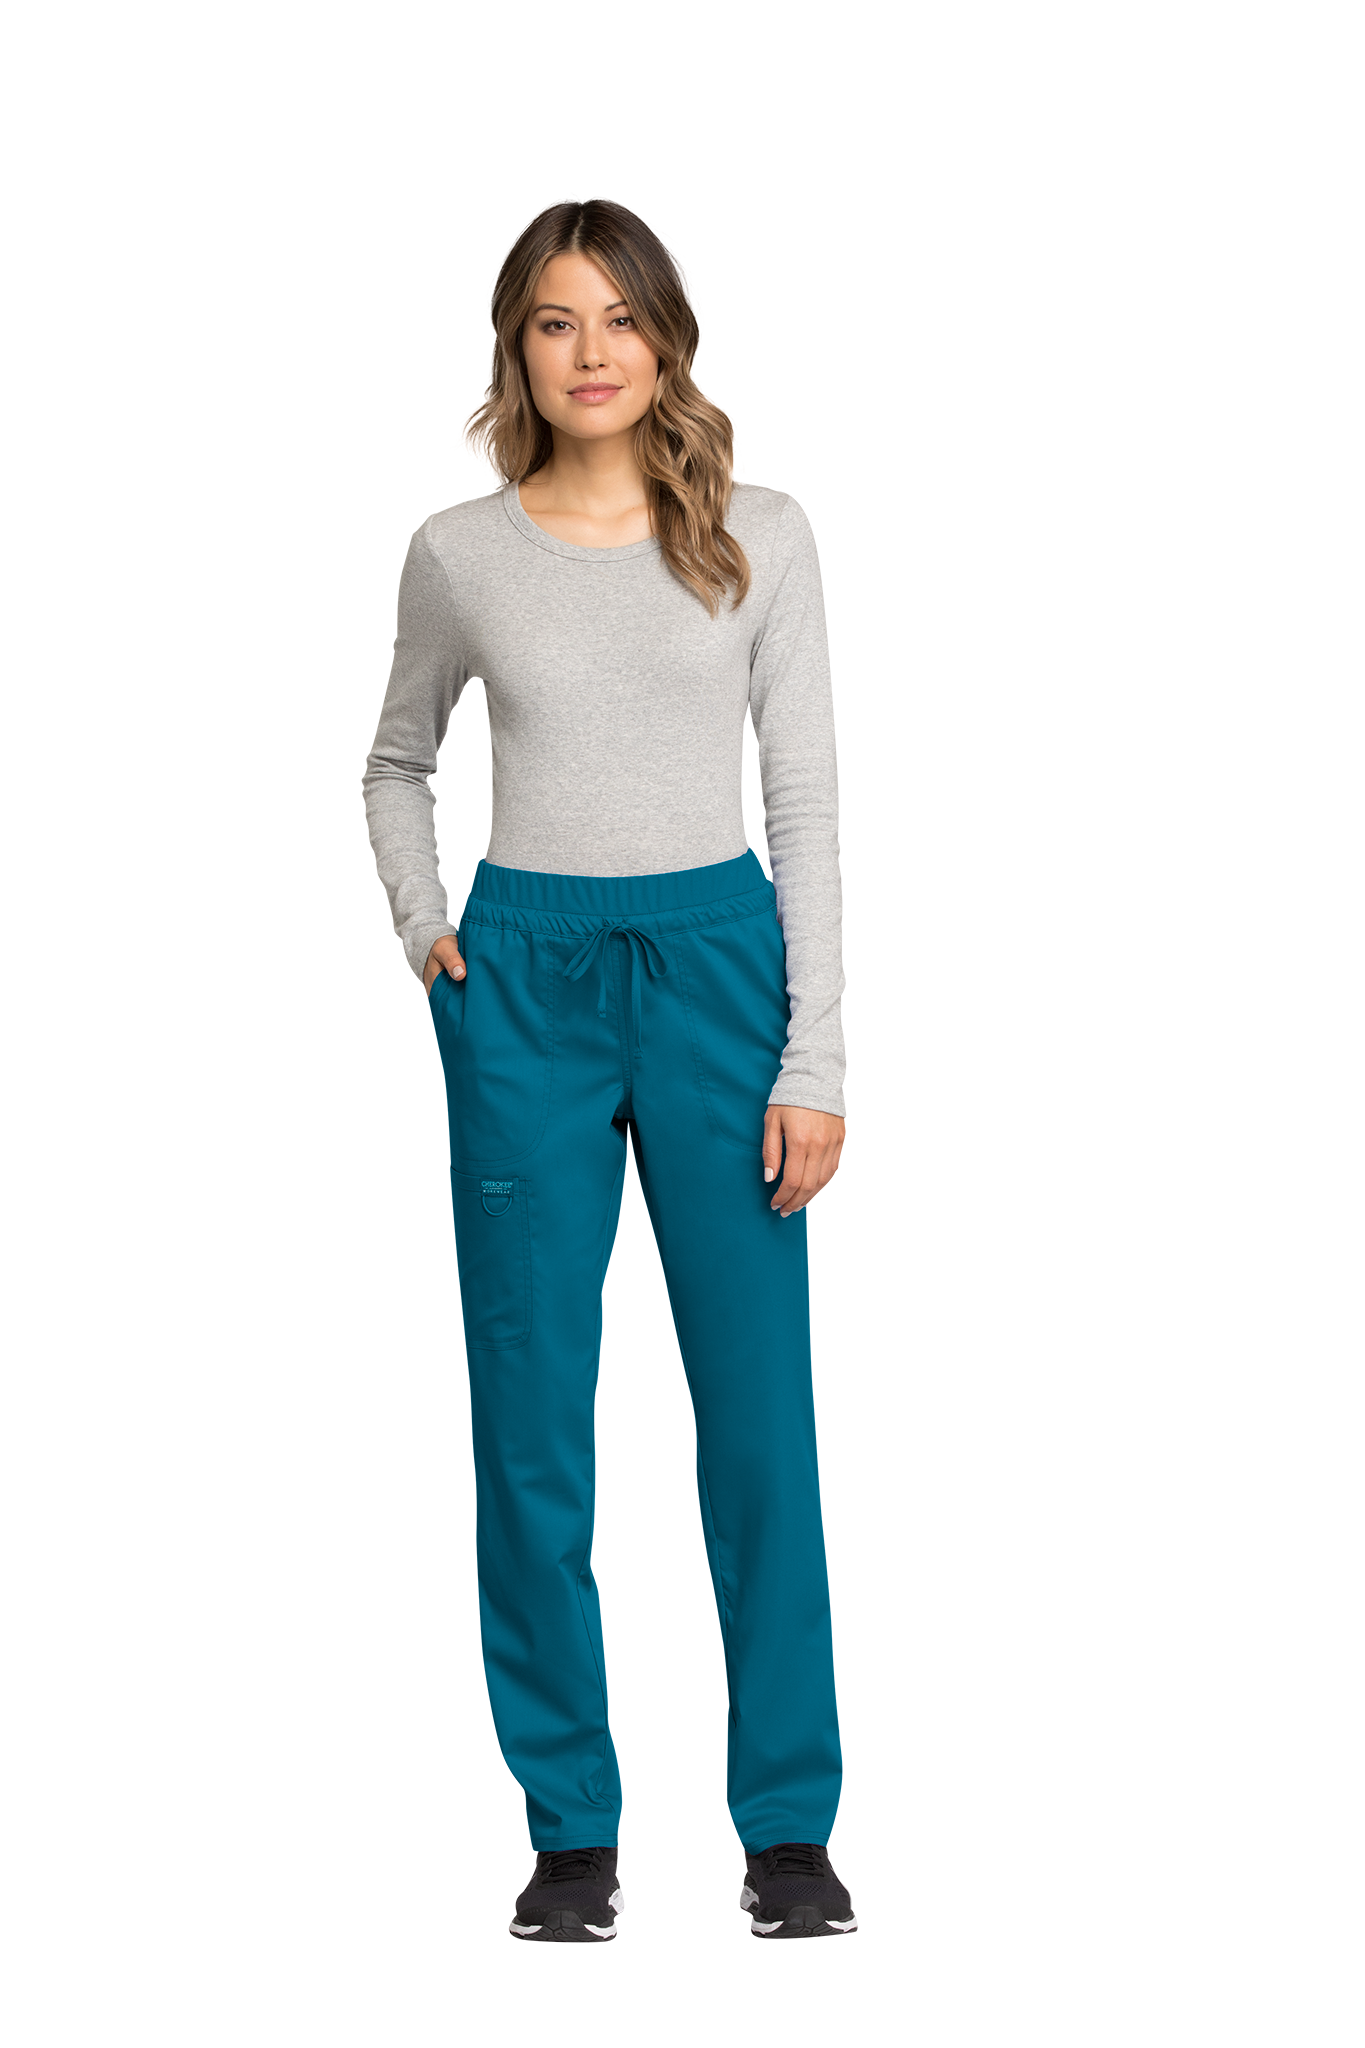 Cherokee Revolution WW105 Mid Rise Tapered Leg Drawstring Pant